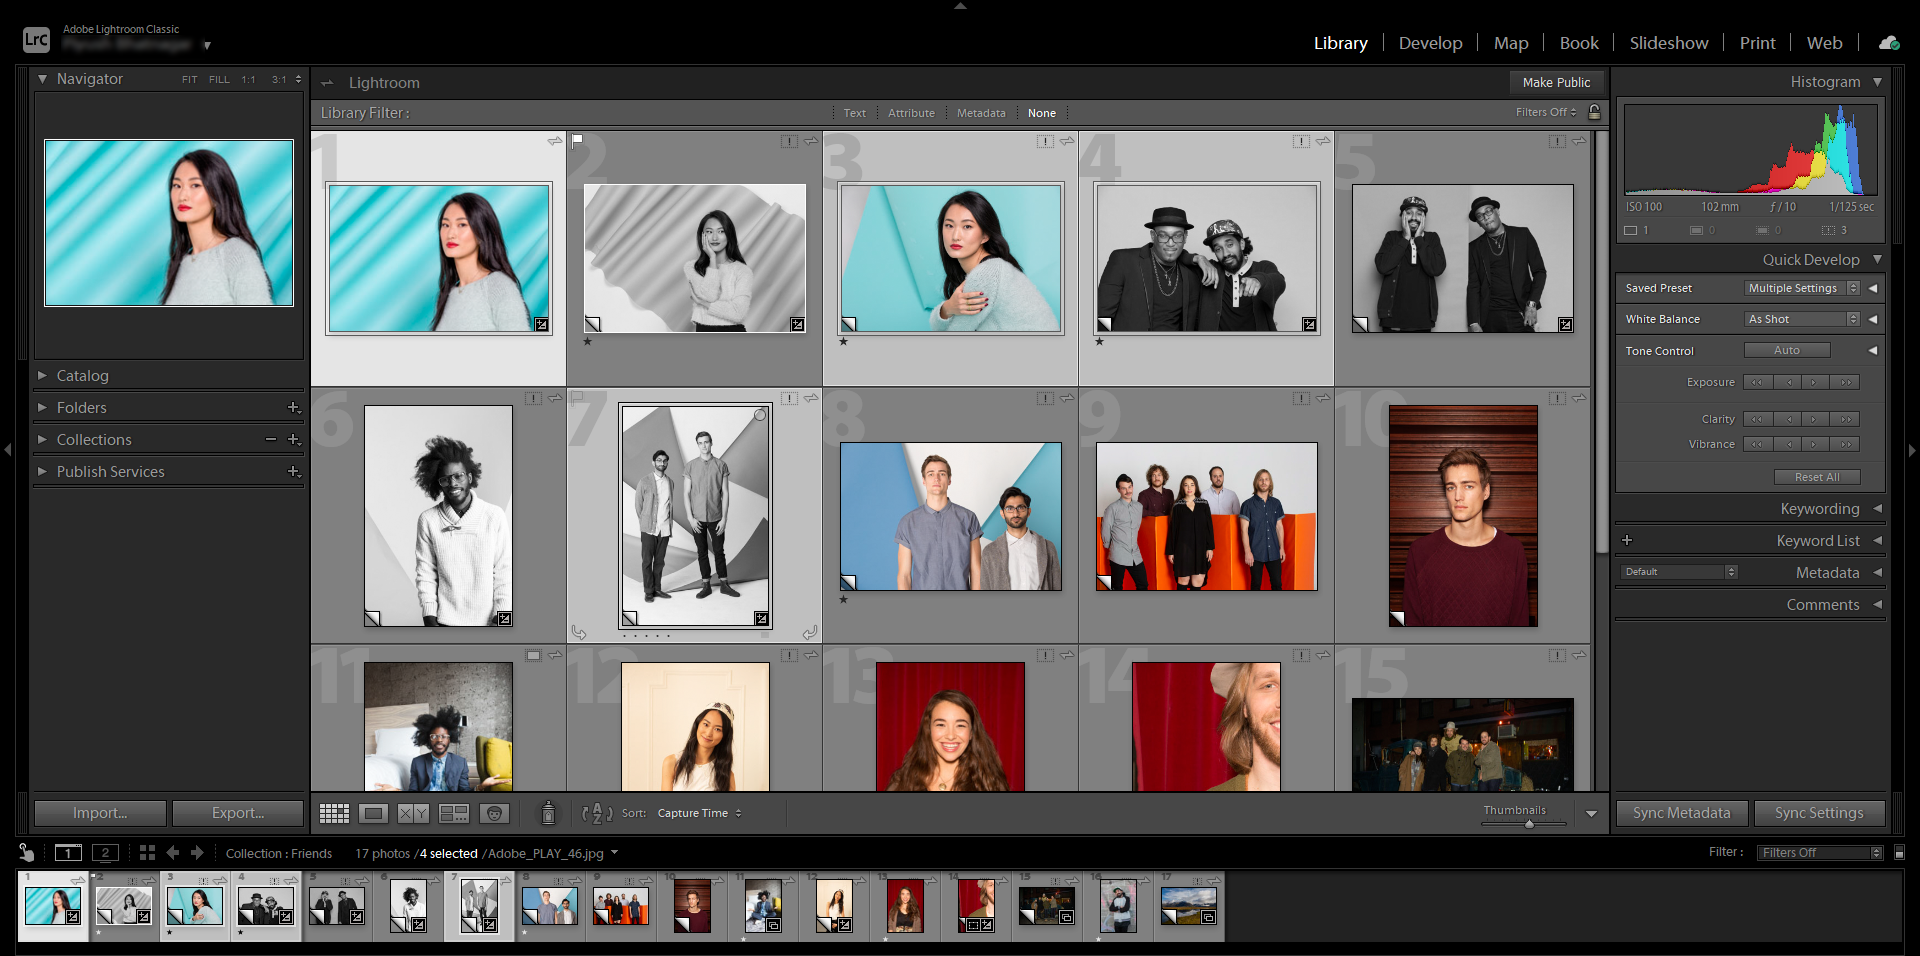 Lightroom Classic Active vs. selected photos